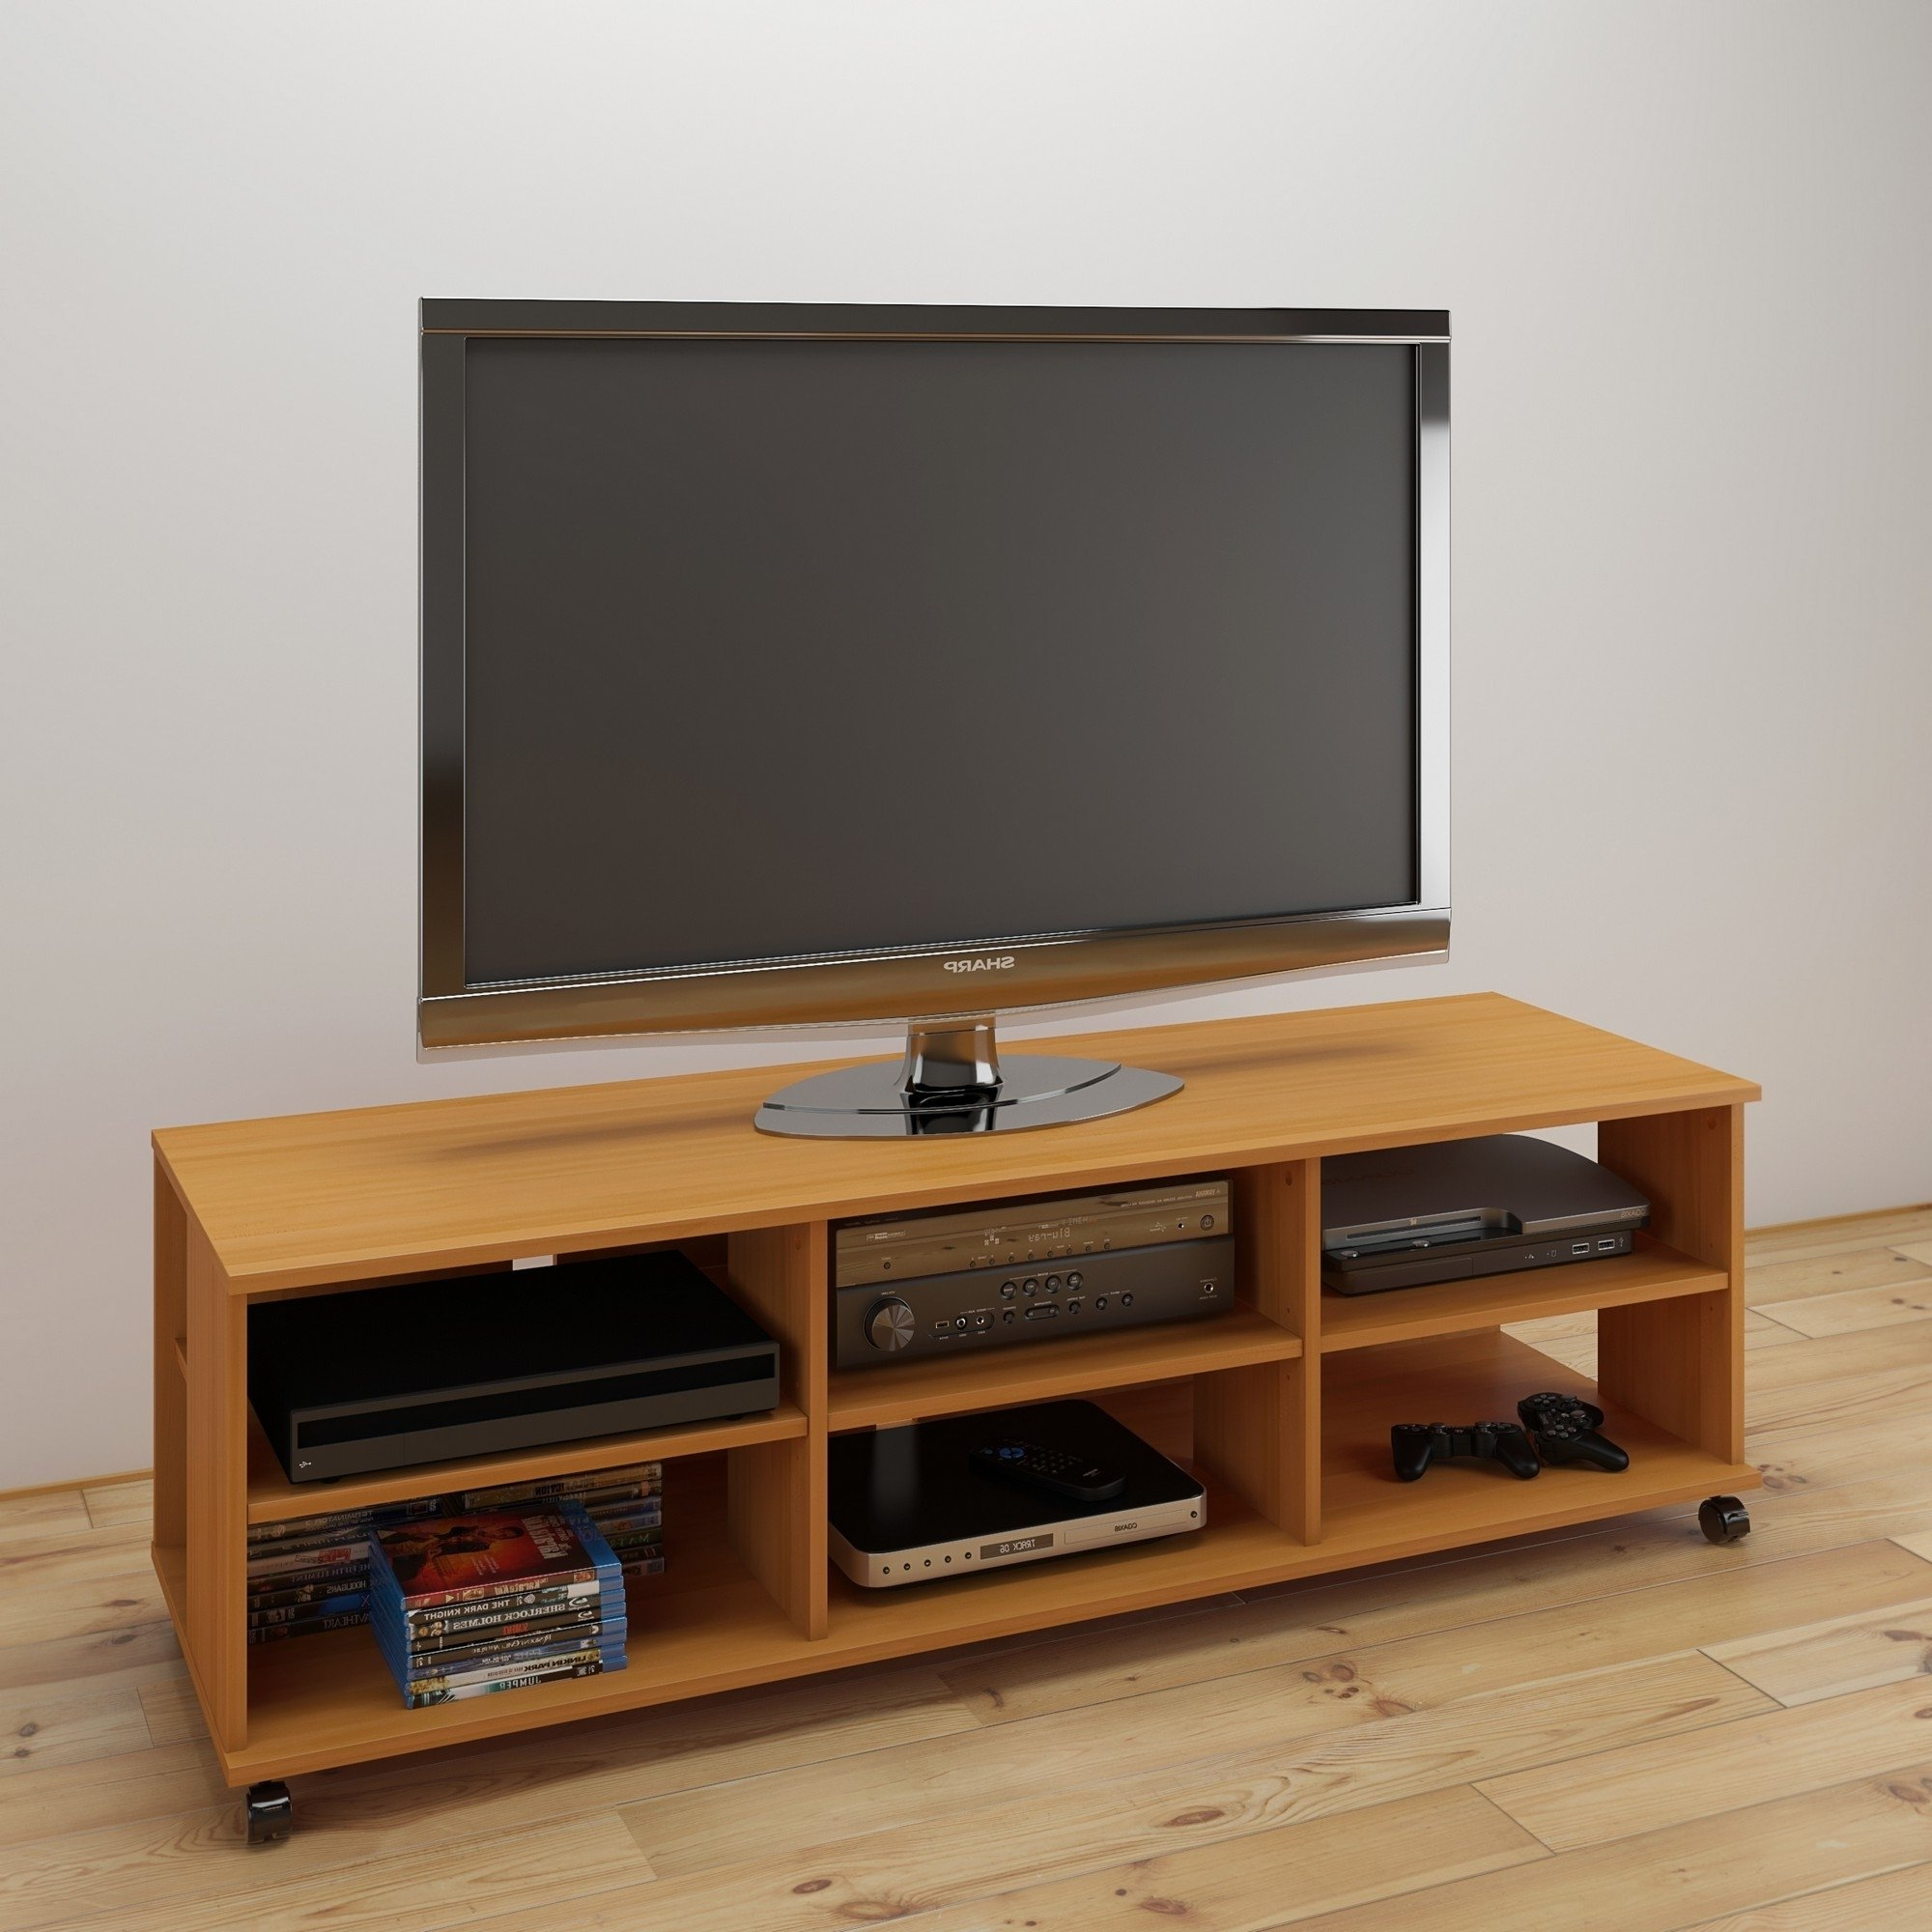 Rowan 64 Inch Tv Stands For Well Known Buy Beige, Modern & Contemporary Tv Stands & Entertainment Centers (Gallery 18 of 20)